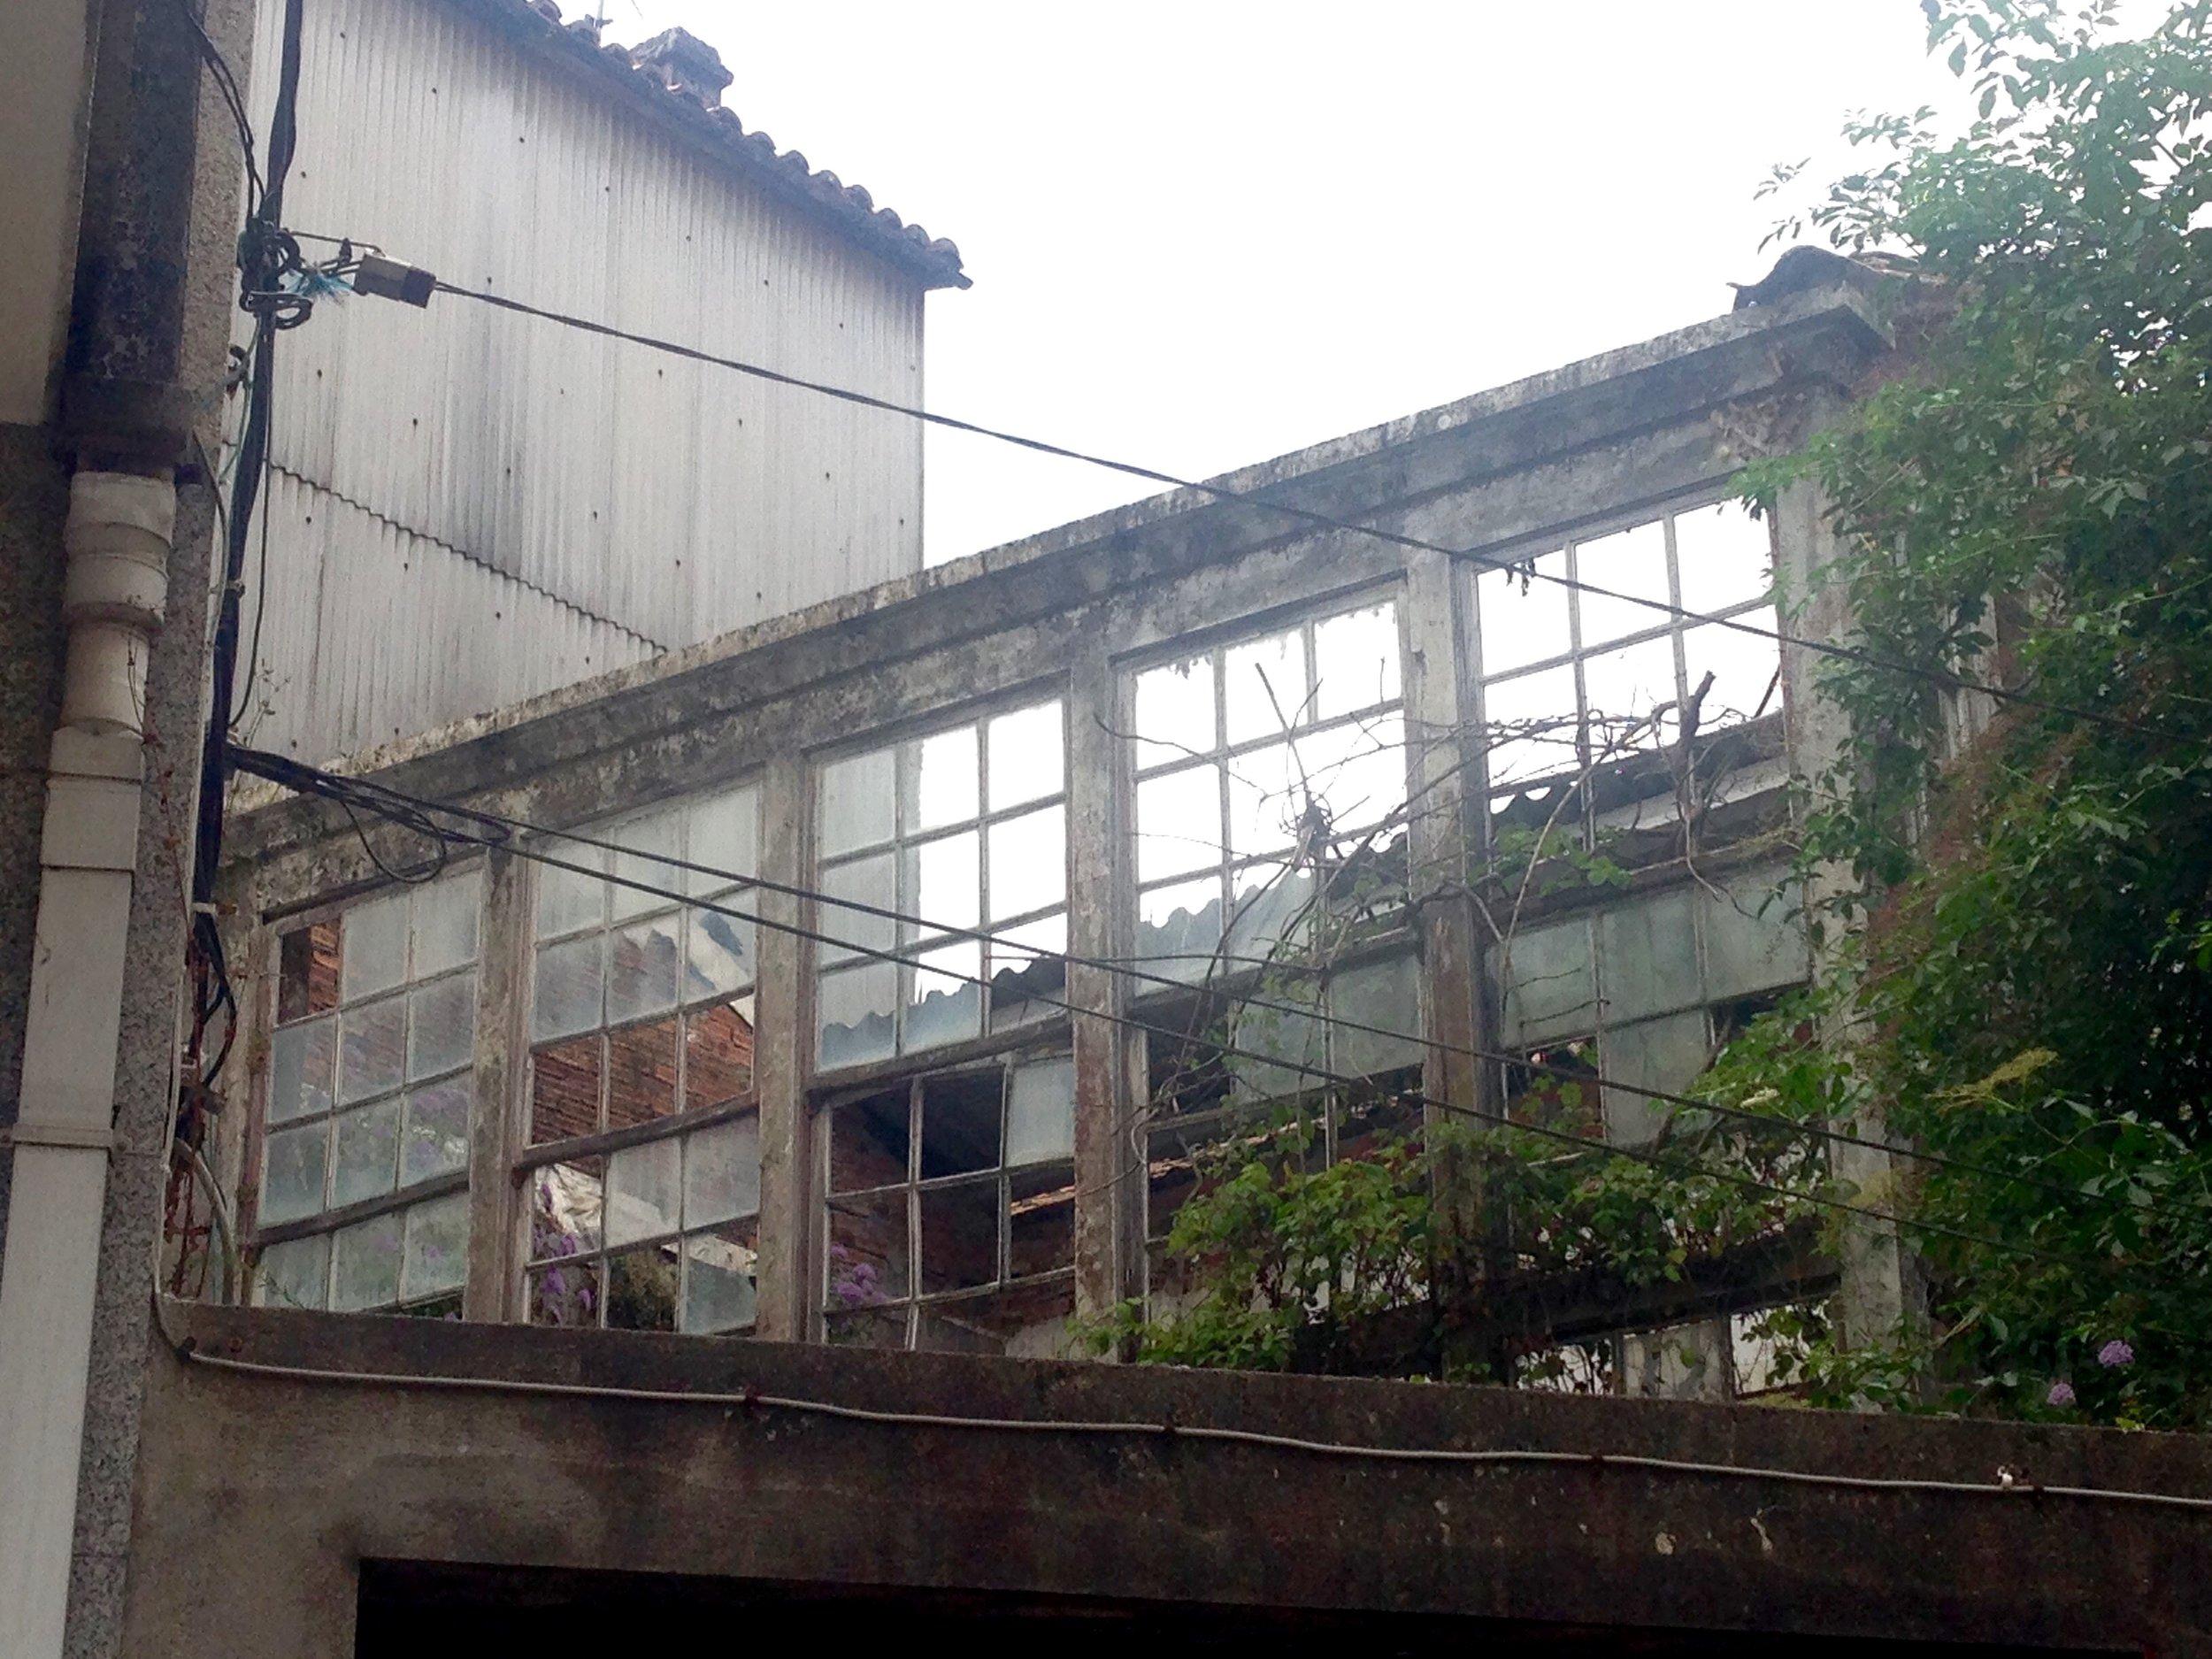 Abandoned building in the heart of Padrón, Spain